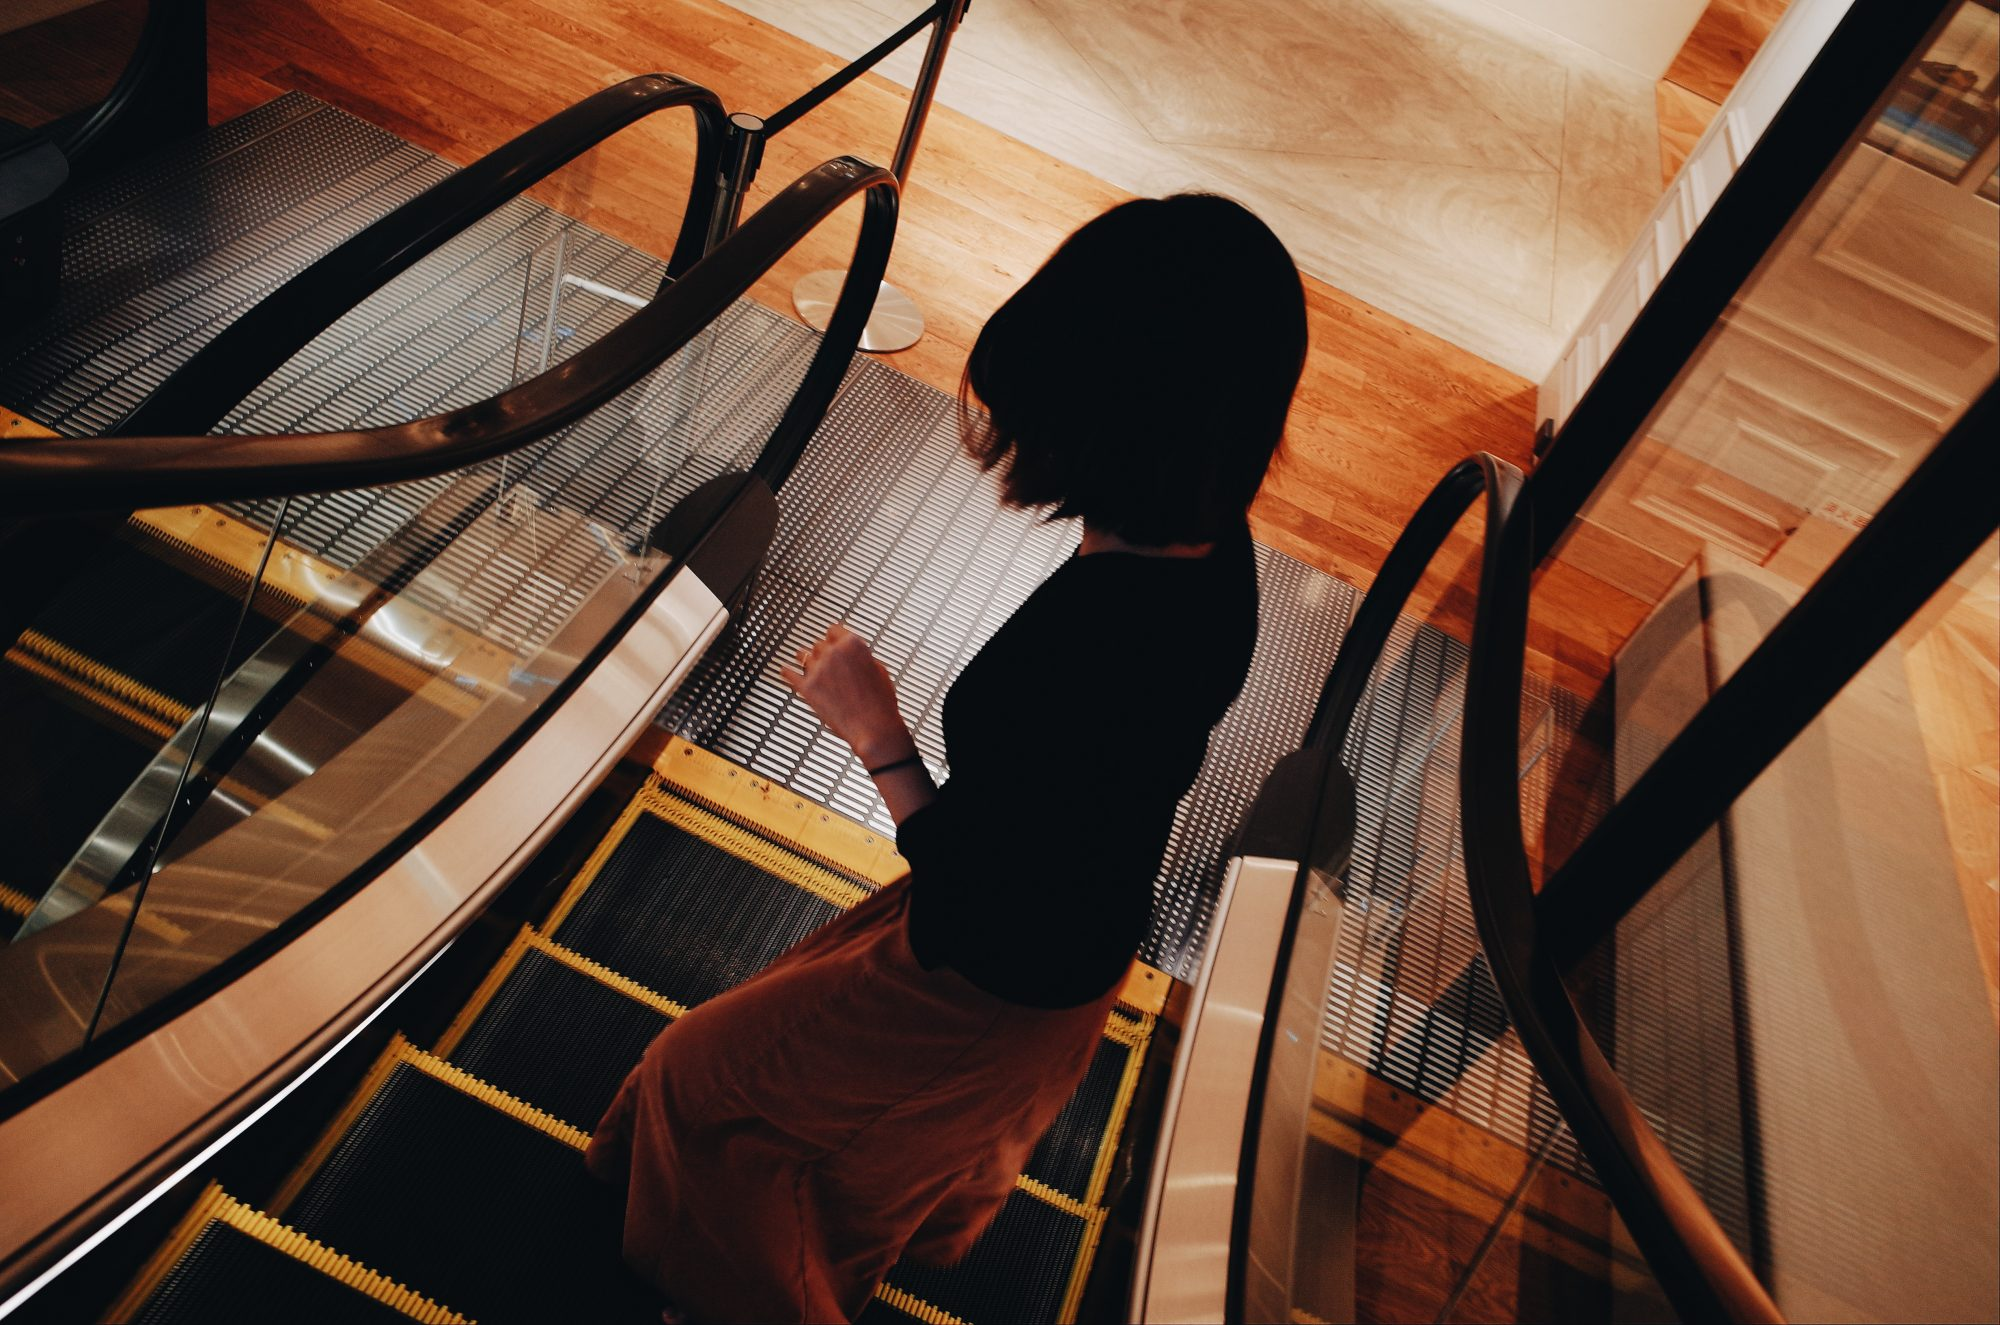 Cindy going down escalator. Shot from higher perspective, looking down. Mall, Kyoto 2017